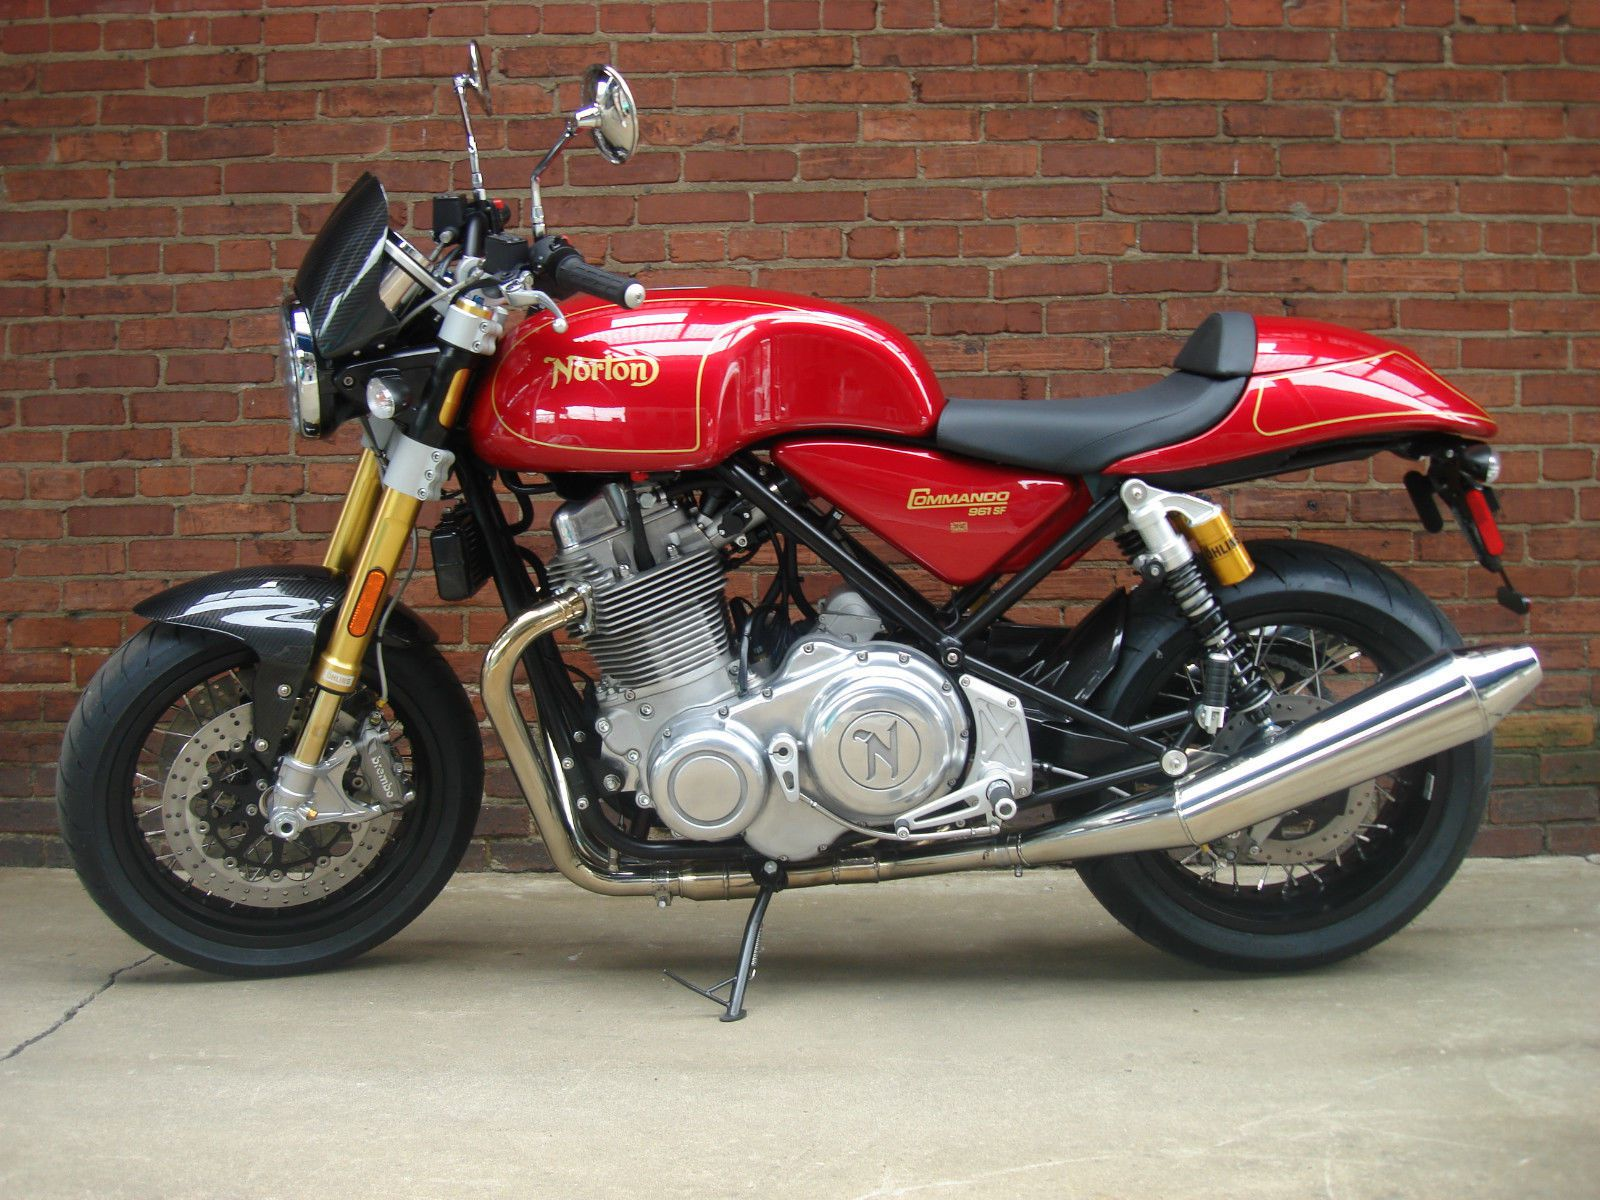 Norton Commando 961 SF images #117670